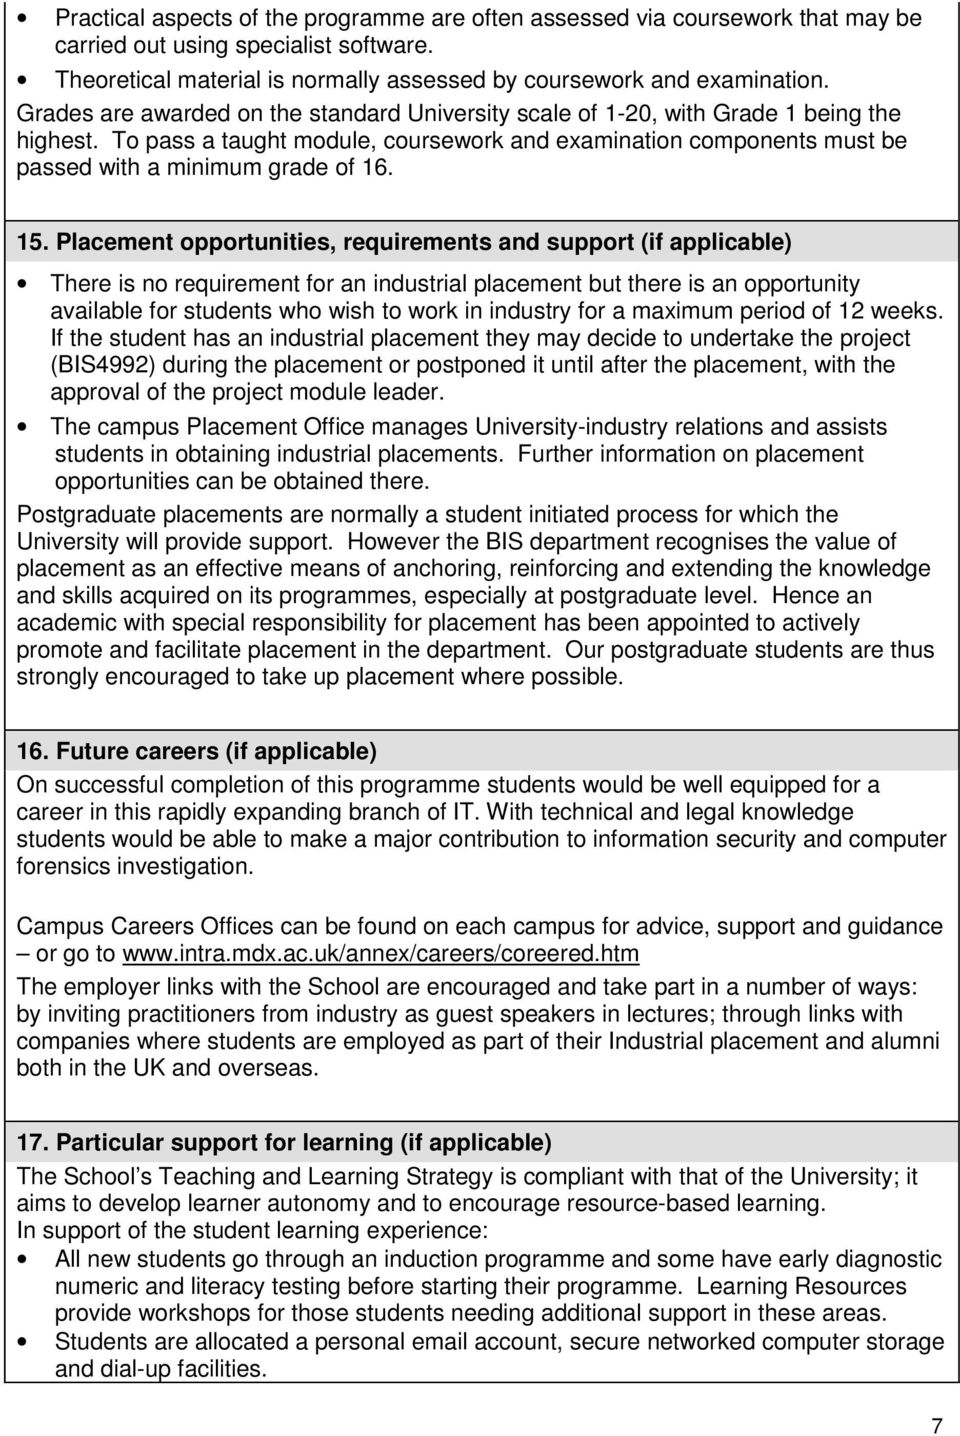 15. Placement opportunities, requirements and support (if applicable) There is no requirement for an industrial placement but there is an opportunity available for students who wish to work in